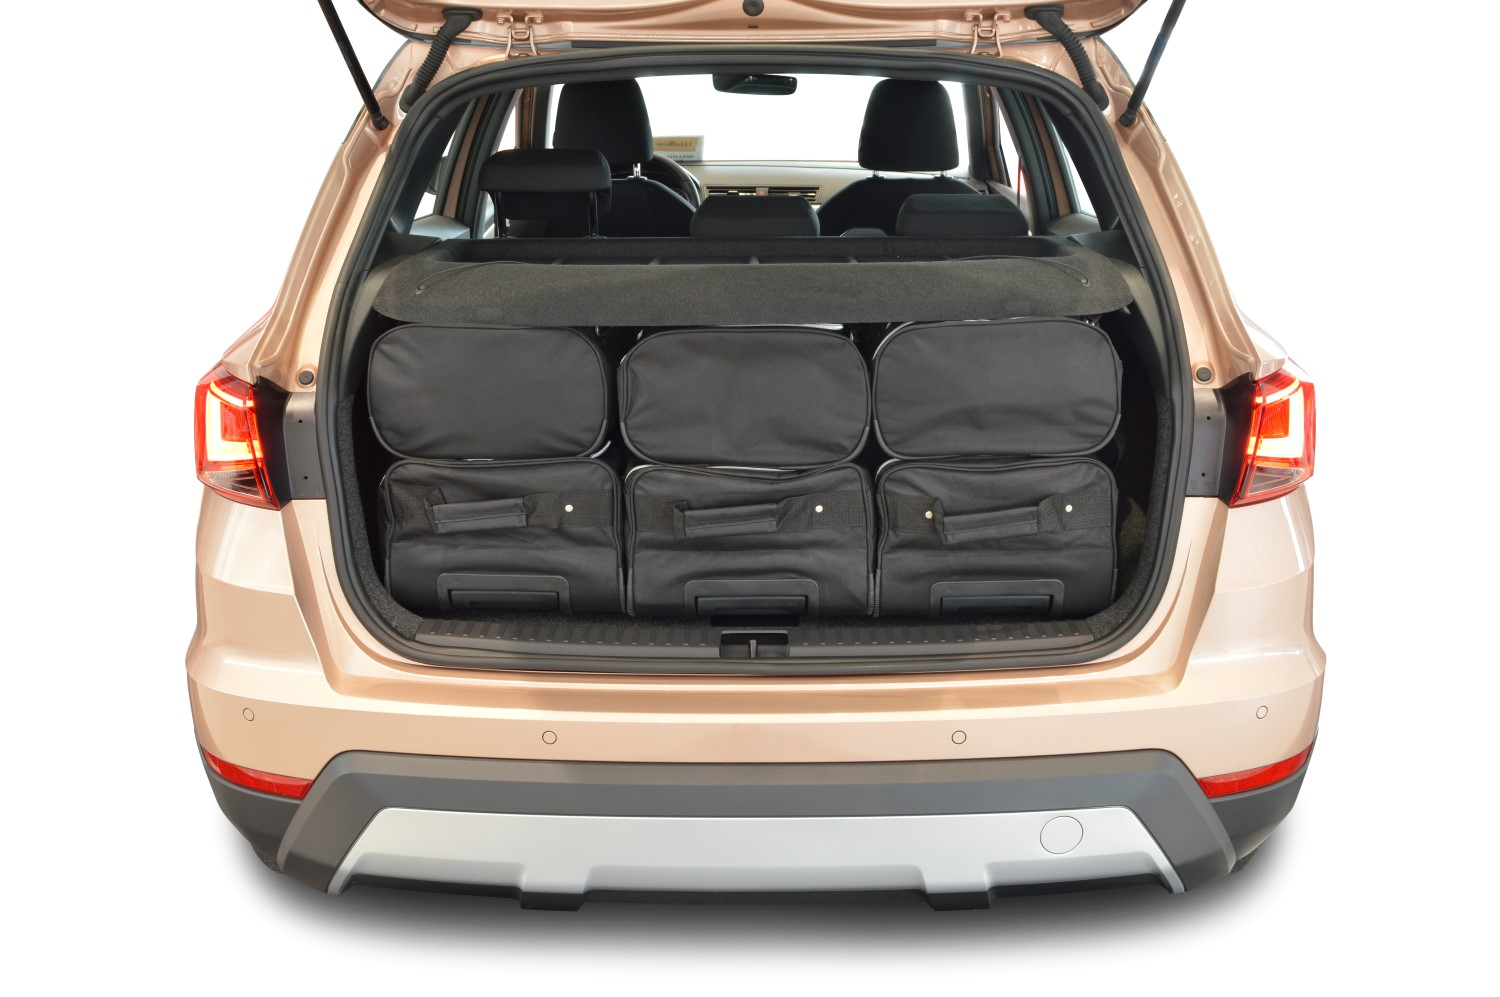 car bags seat arona reisetaschen set ab 2017 3x54l. Black Bedroom Furniture Sets. Home Design Ideas